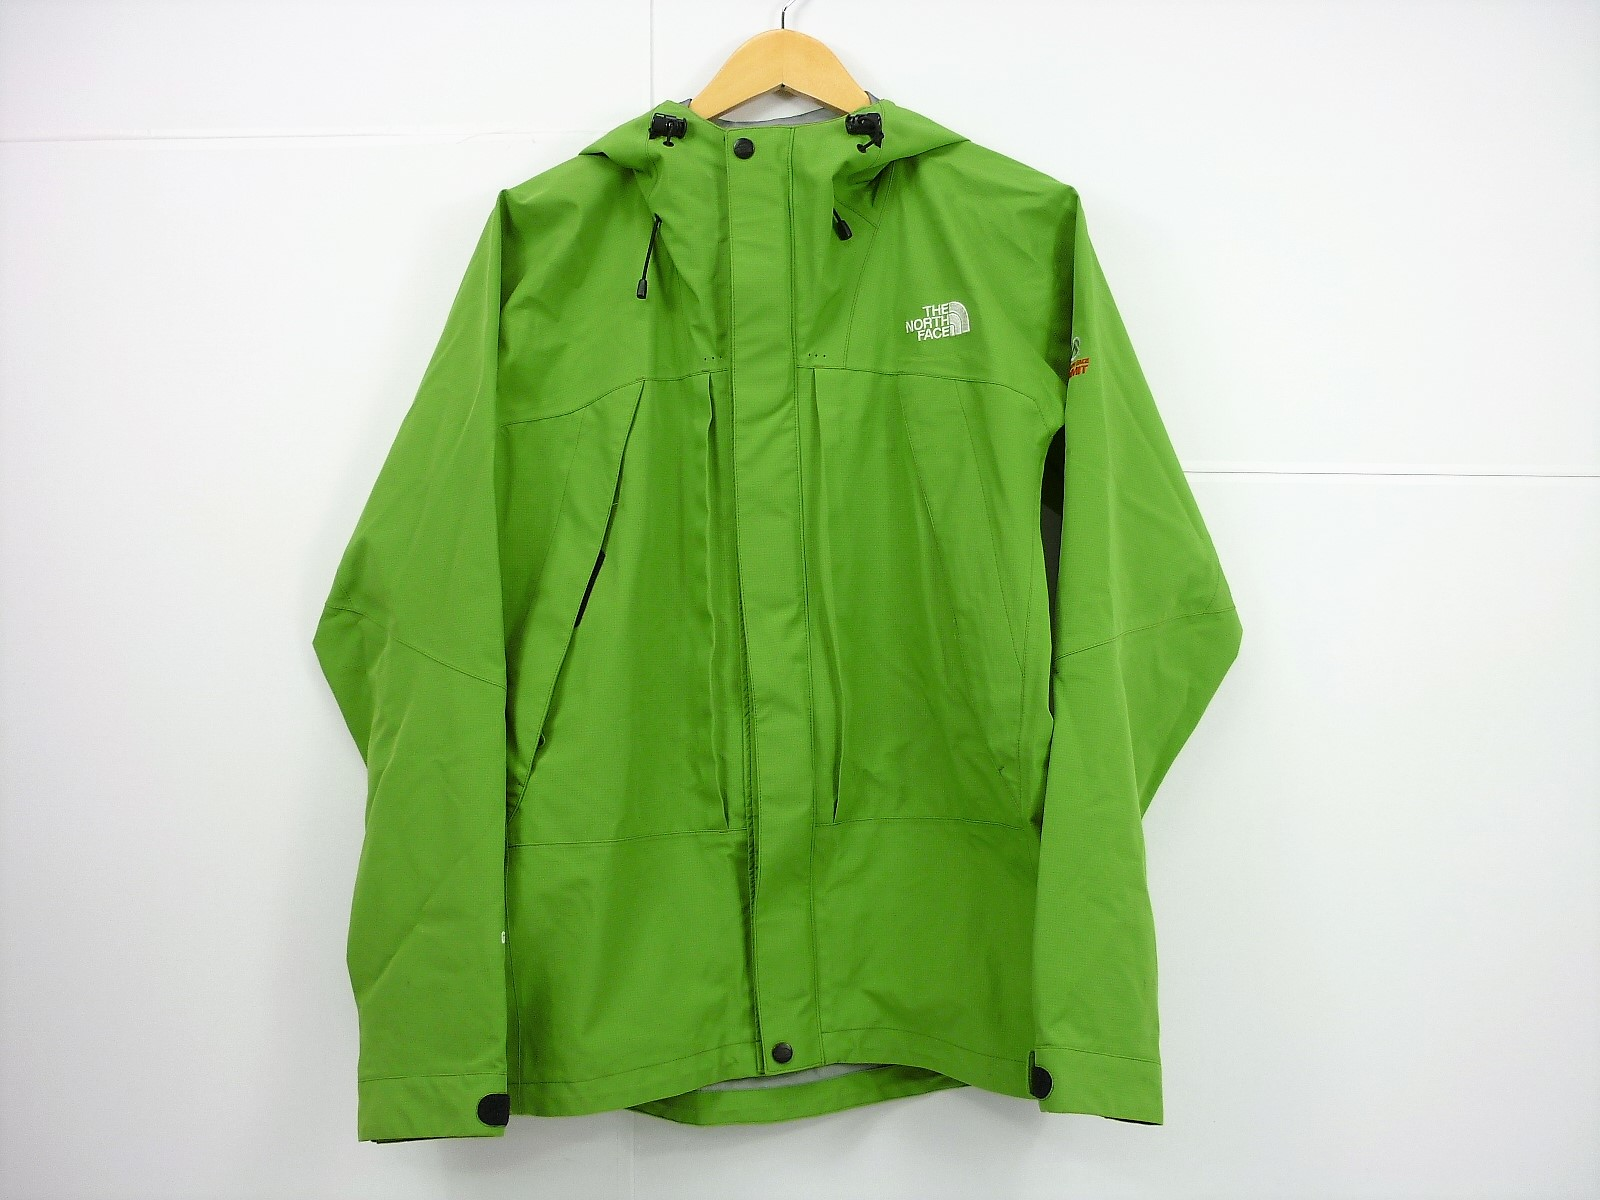 NORTH FACE ALL MOUNTAIN JACKET NP61502 size:L ノースフェイス SUMMIT マウンテンパーカー GORE-TEX